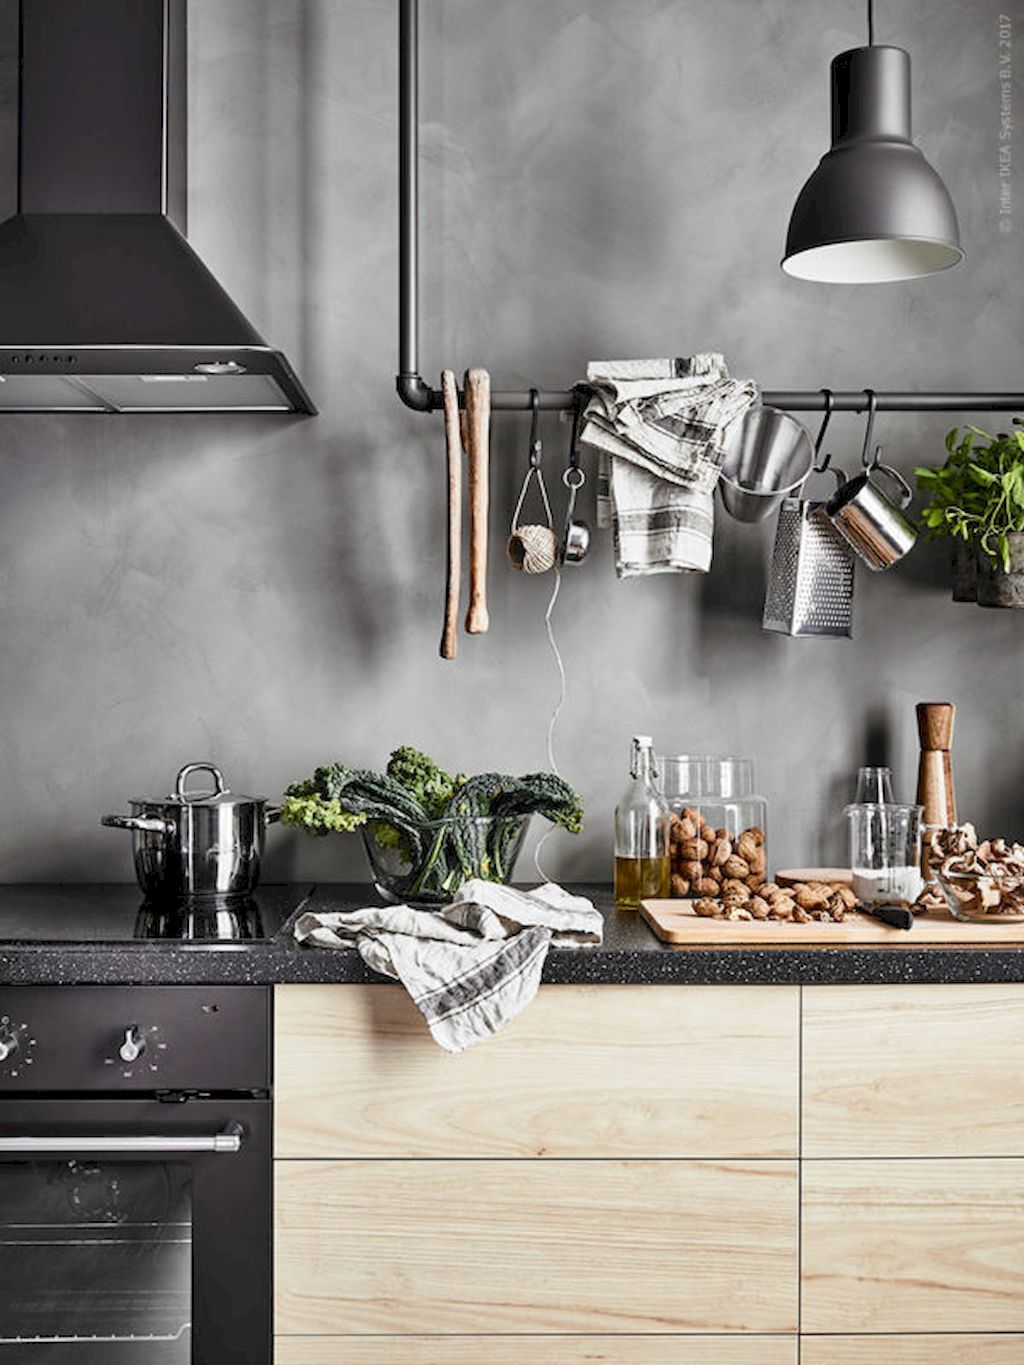 100 great design ideas scandinavian for your kitchen (2